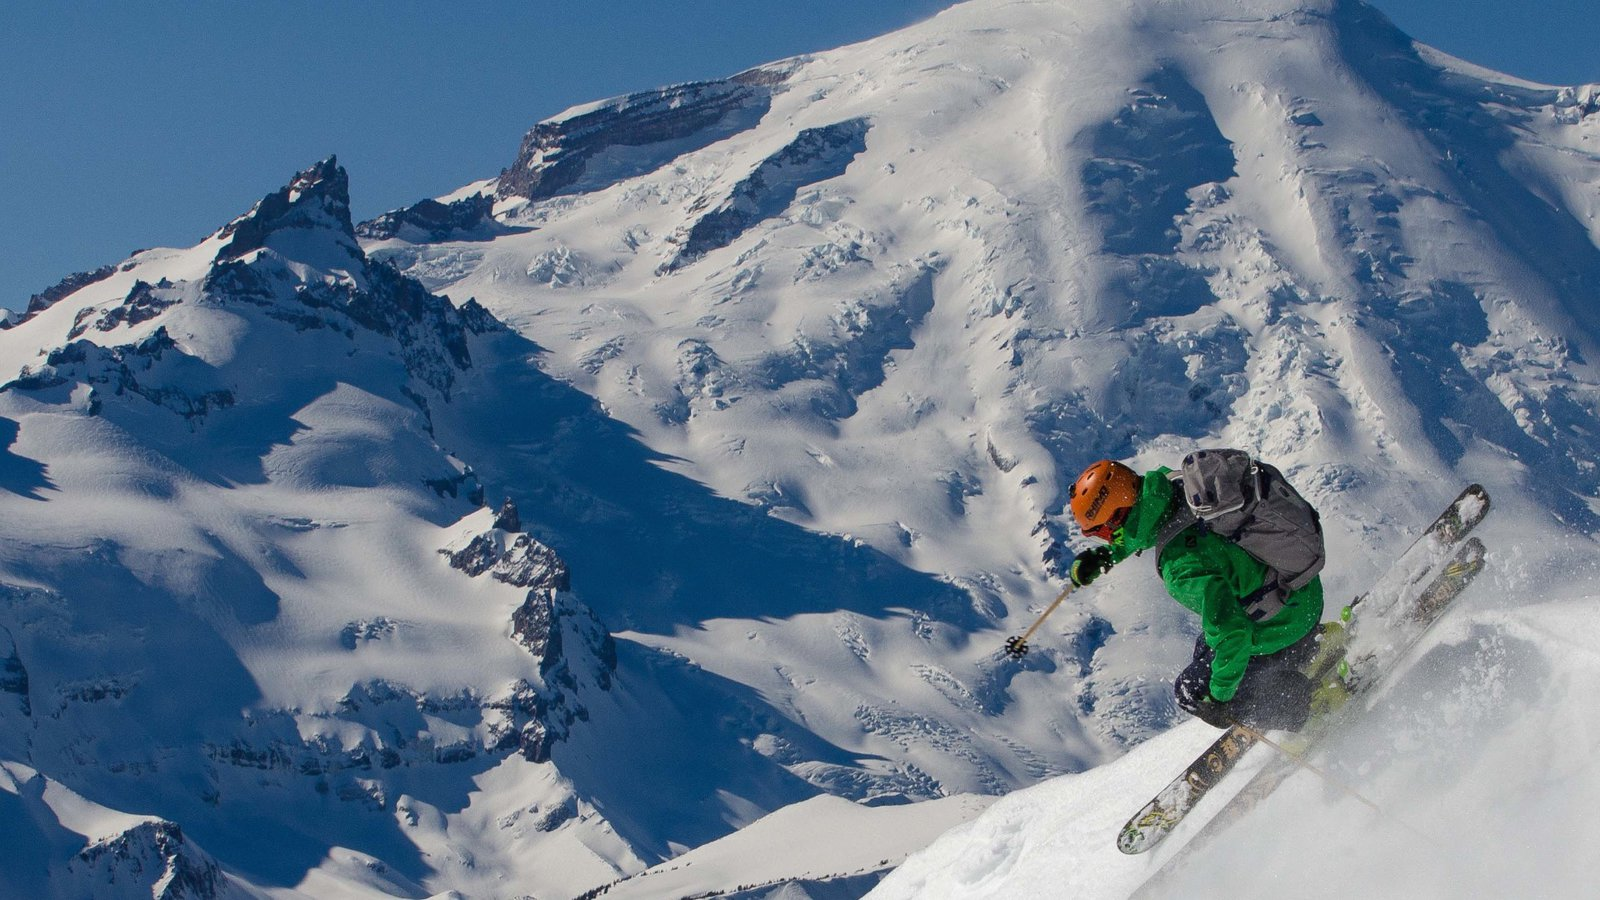 crystal mountain ski area pictures: view photos & images of crystal